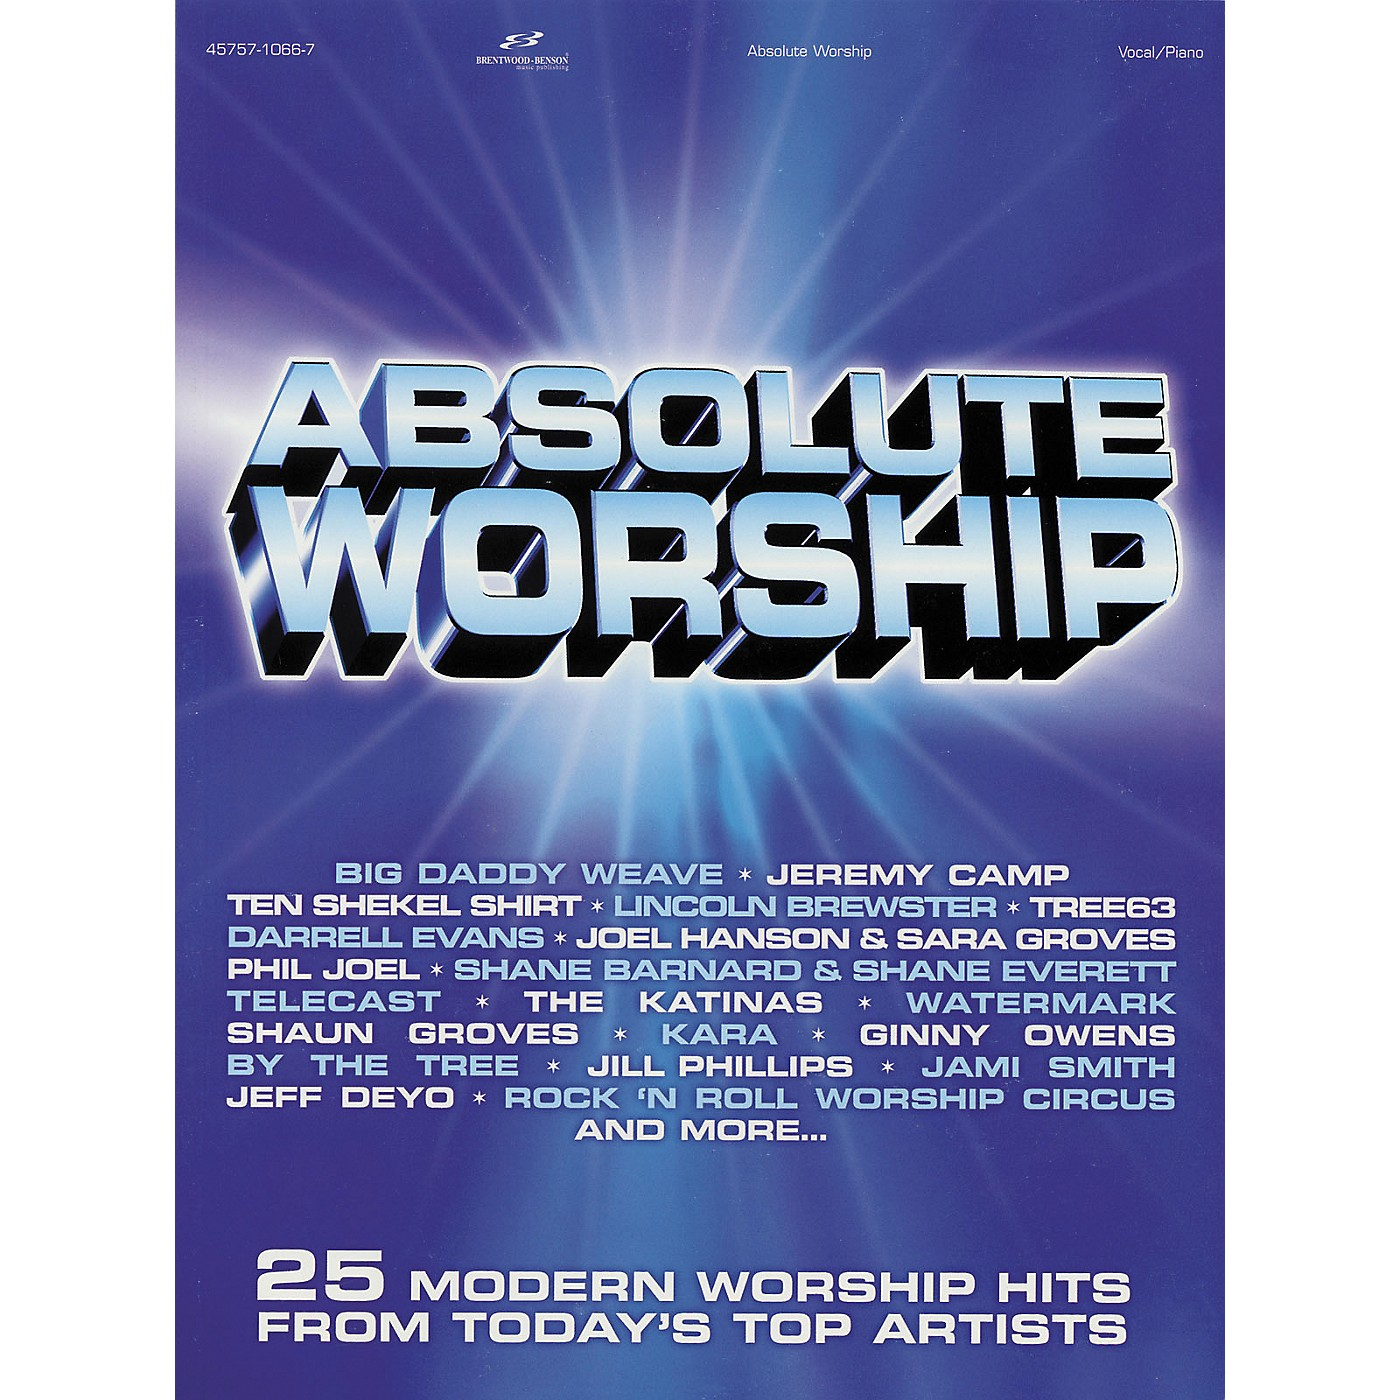 Hal Leonard Absolute Worship Songbook for Piano, Vocal, Guitar Songbook thumbnail